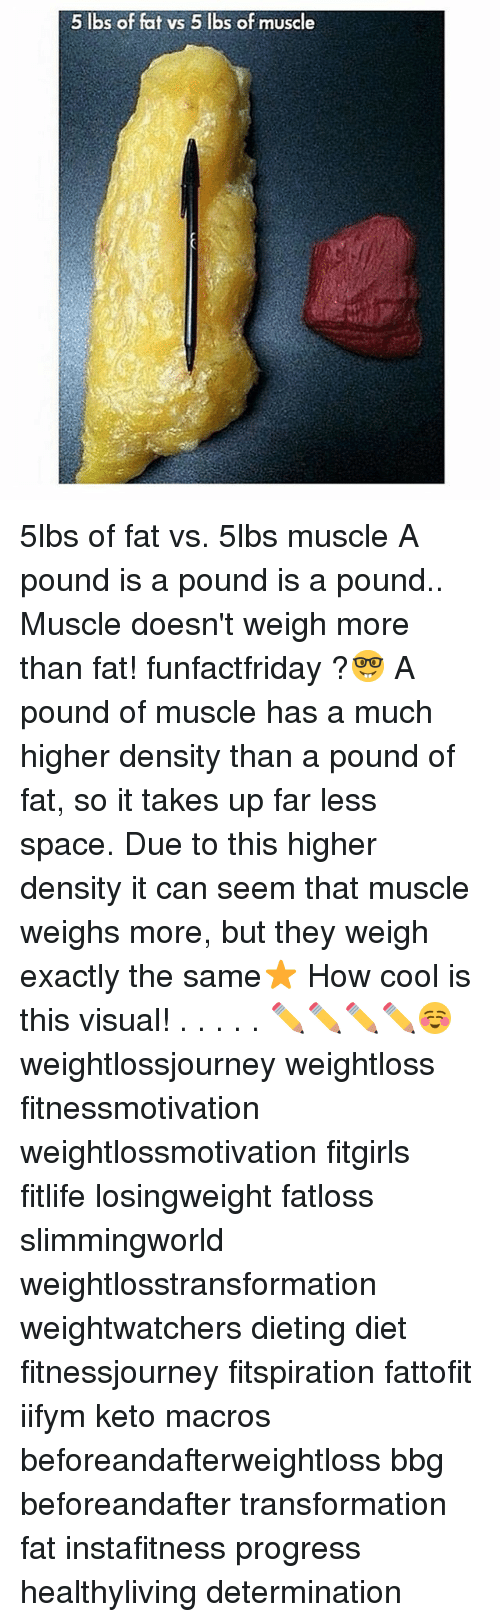 Keto: 5 lbs of fat vs 5 lbs of muscle 5lbs of fat vs. 5lbs muscle A pound is a pound is a pound.. Muscle doesn't weigh more than fat! funfactfriday ?🤓 A pound of muscle has a much higher density than a pound of fat, so it takes up far less space. Due to this higher density it can seem that muscle weighs more, but they weigh exactly the same⭐️ How cool is this visual! . . . . . ✏️✏️✏️✏️☺️ weightlossjourney weightloss fitnessmotivation weightlossmotivation fitgirls fitlife losingweight fatloss slimmingworld weightlosstransformation weightwatchers dieting diet fitnessjourney fitspiration fattofit iifym keto macros beforeandafterweightloss bbg beforeandafter transformation fat instafitness progress healthyliving determination